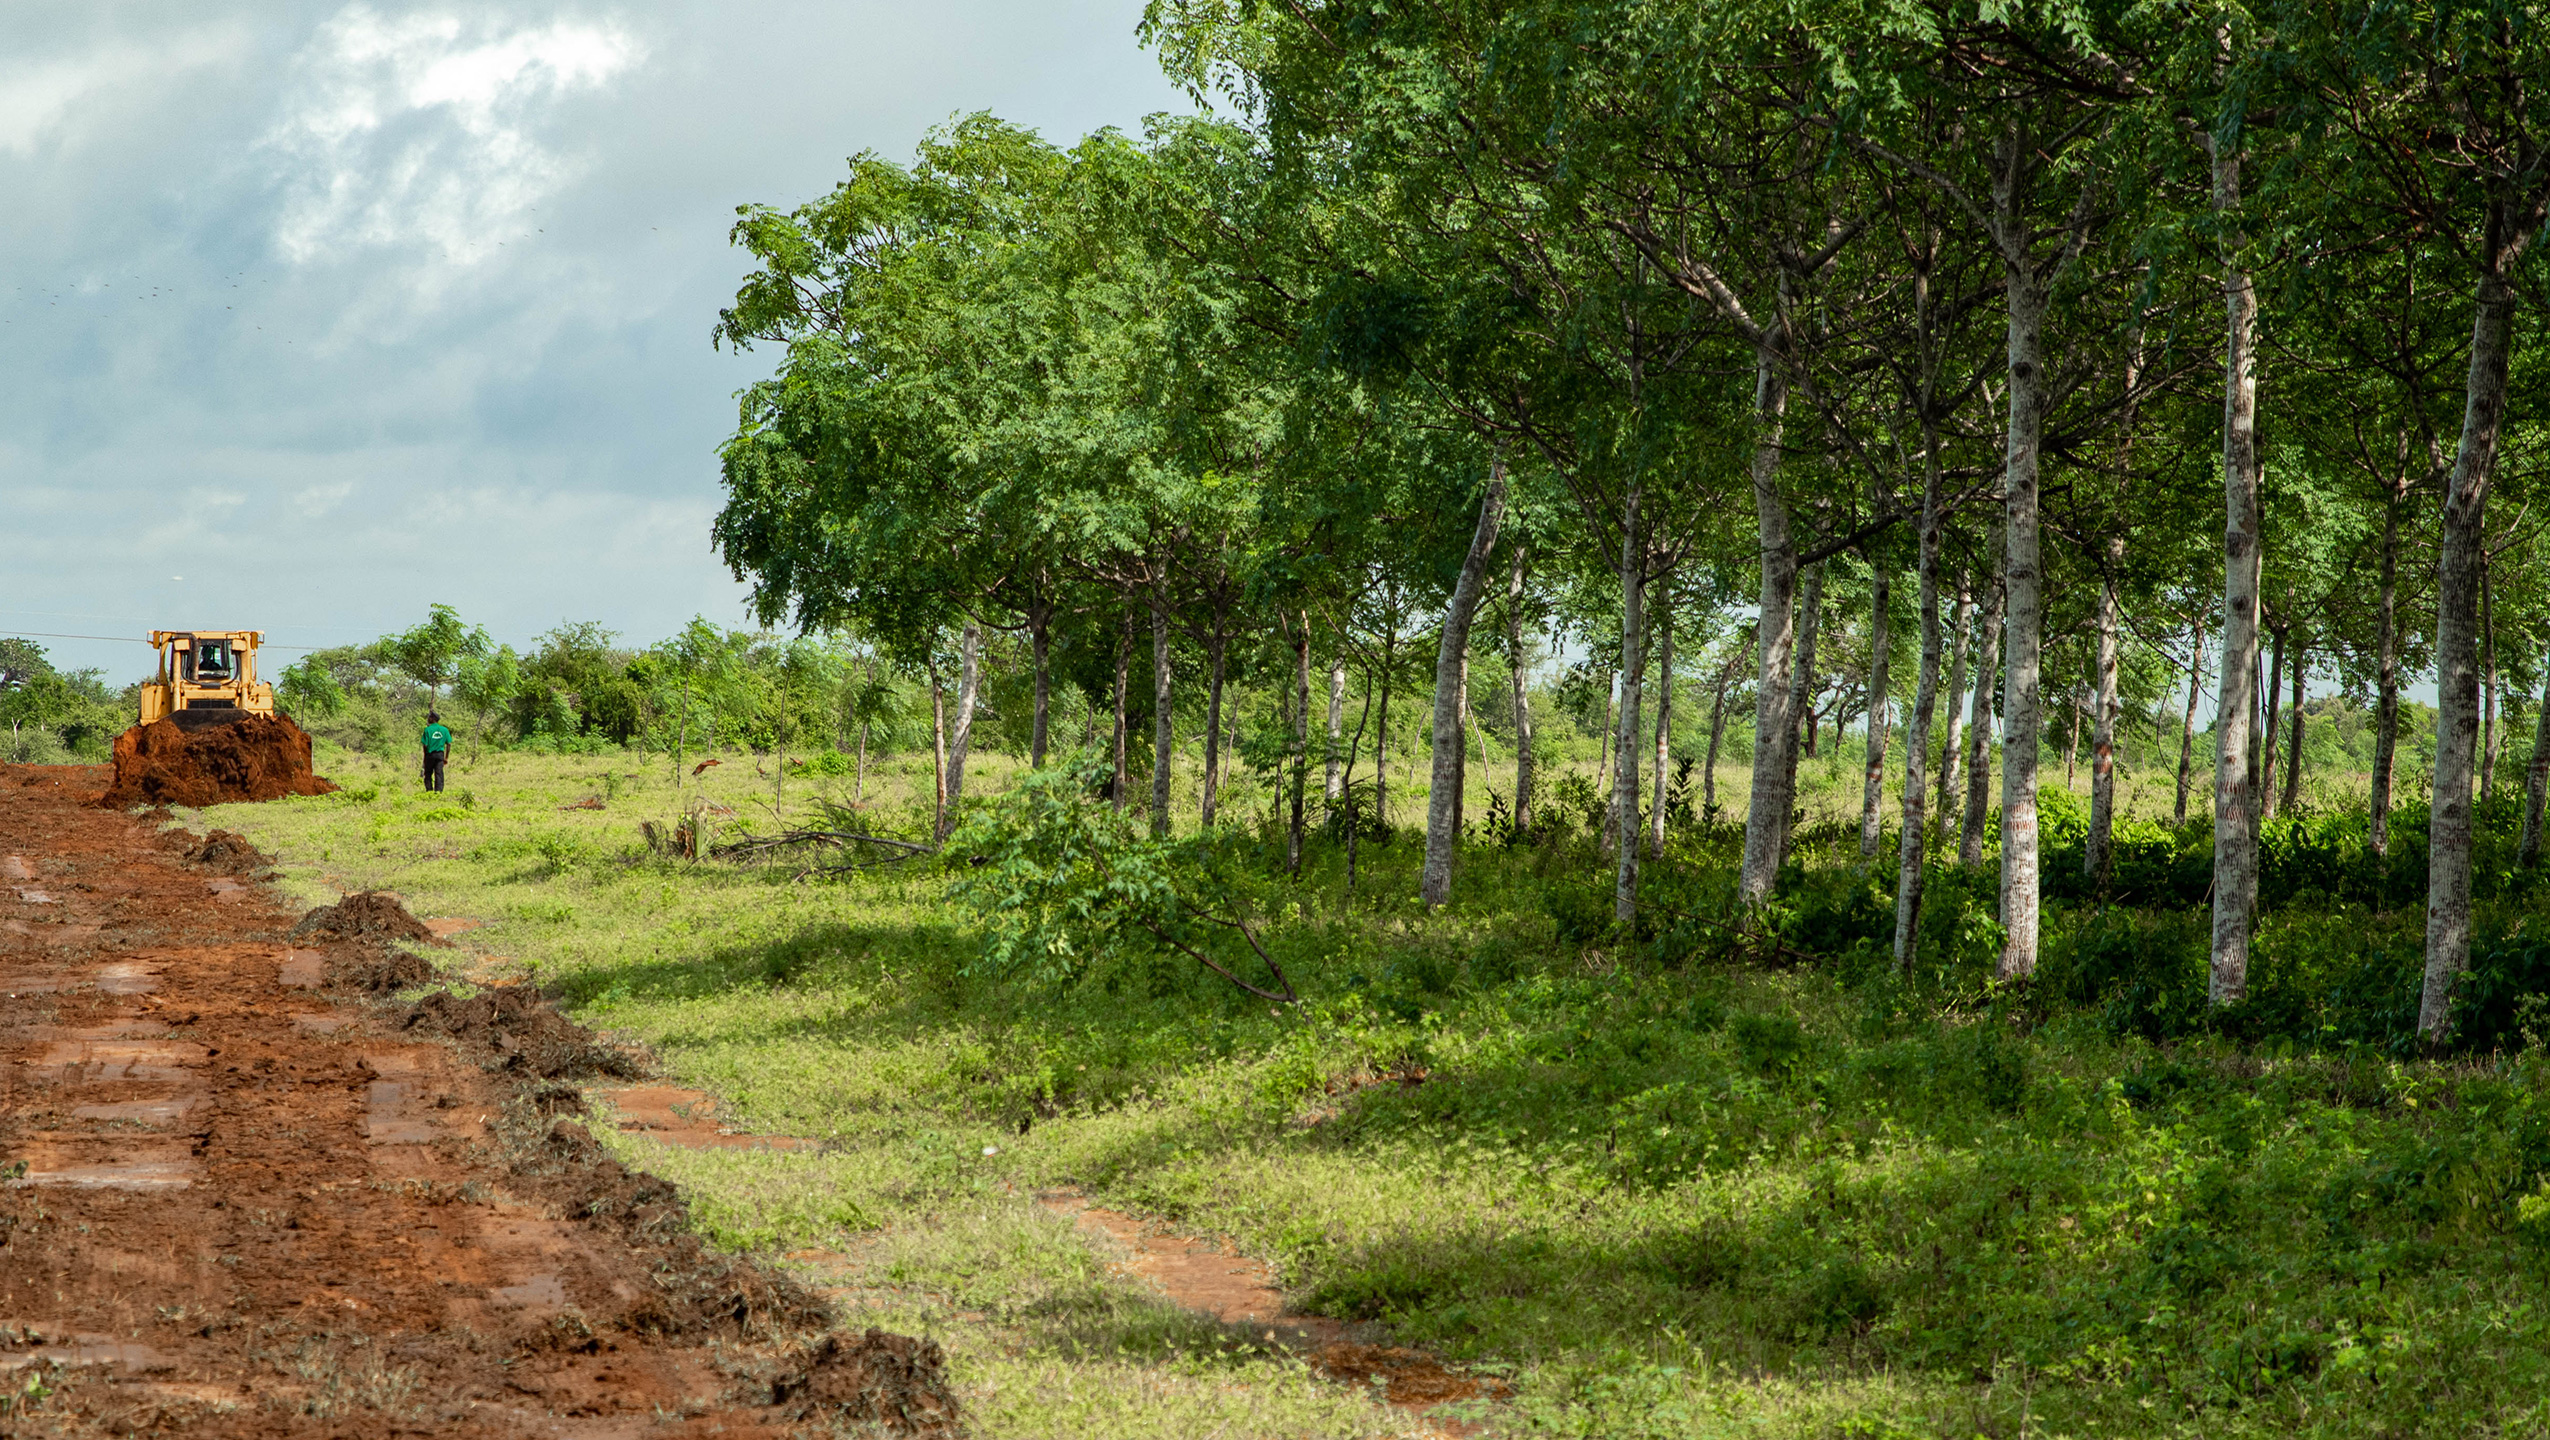 Tree-planting reduces the climate threat